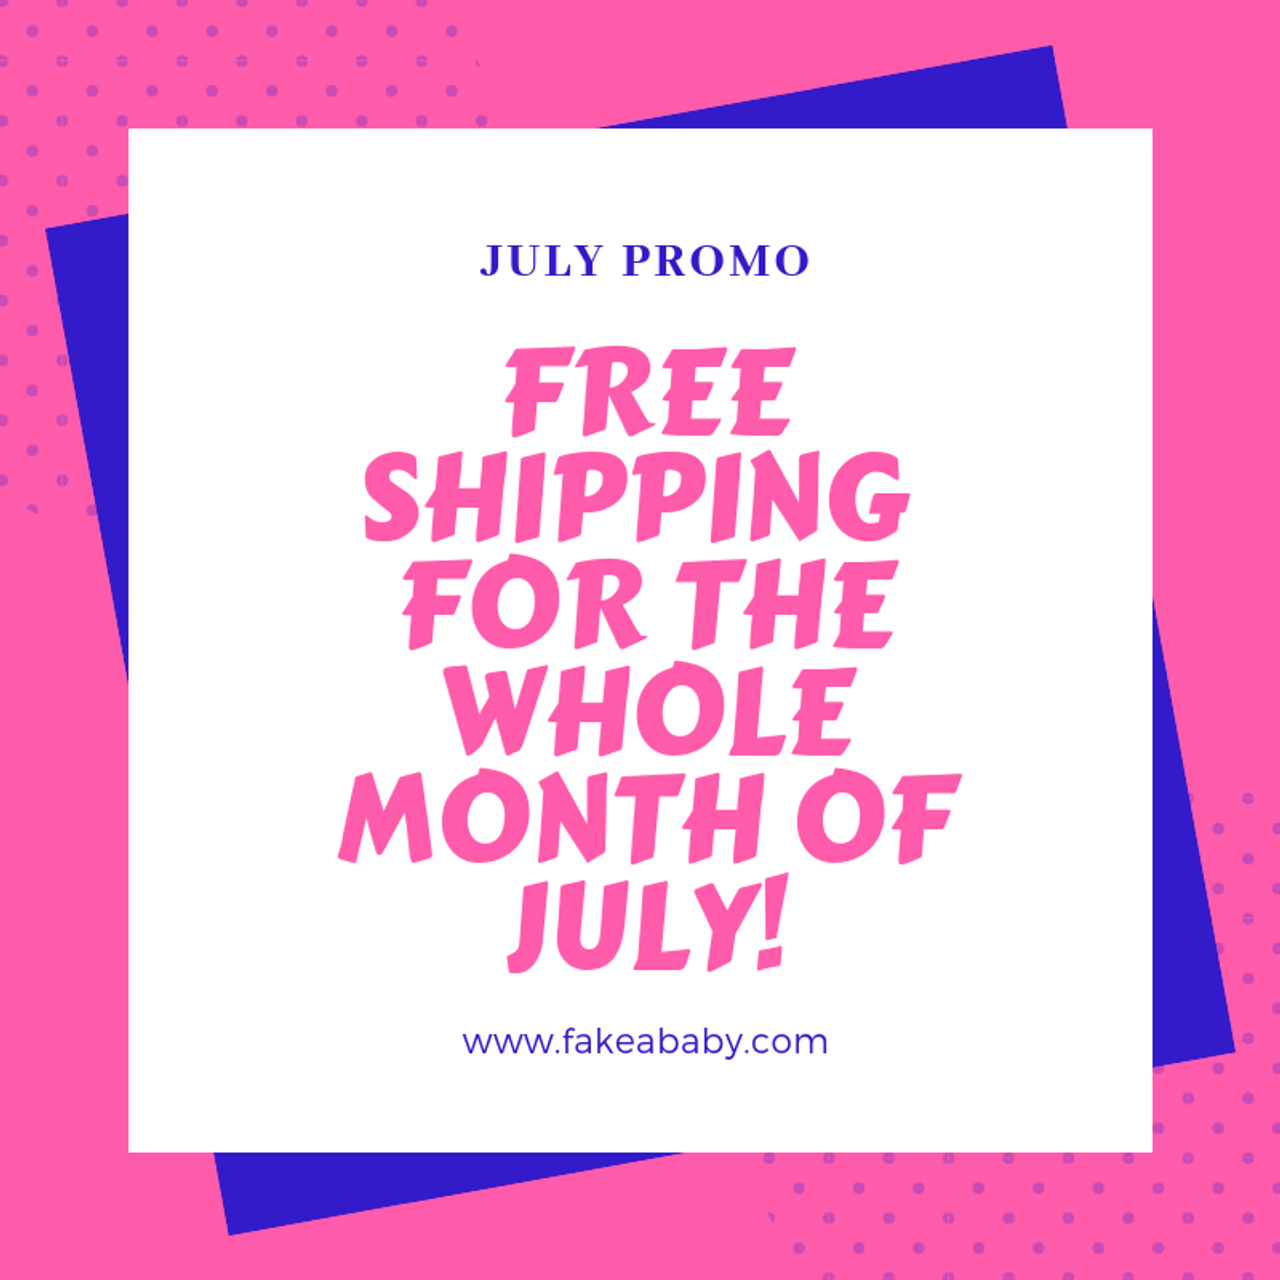 Hot August Treat: FREE SHIPPING!